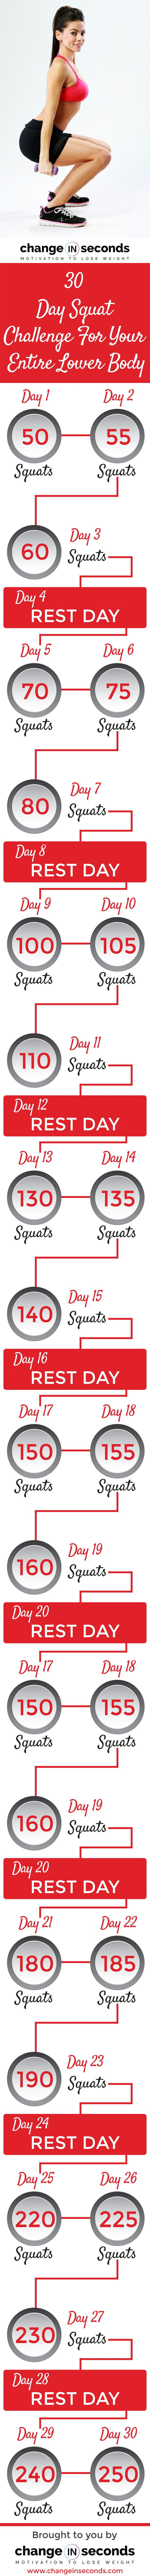 Squat Challenge (Download PDF) http://www.changeinseconds.com/30-day-squat-challenge-for-your-entire-lower-body/